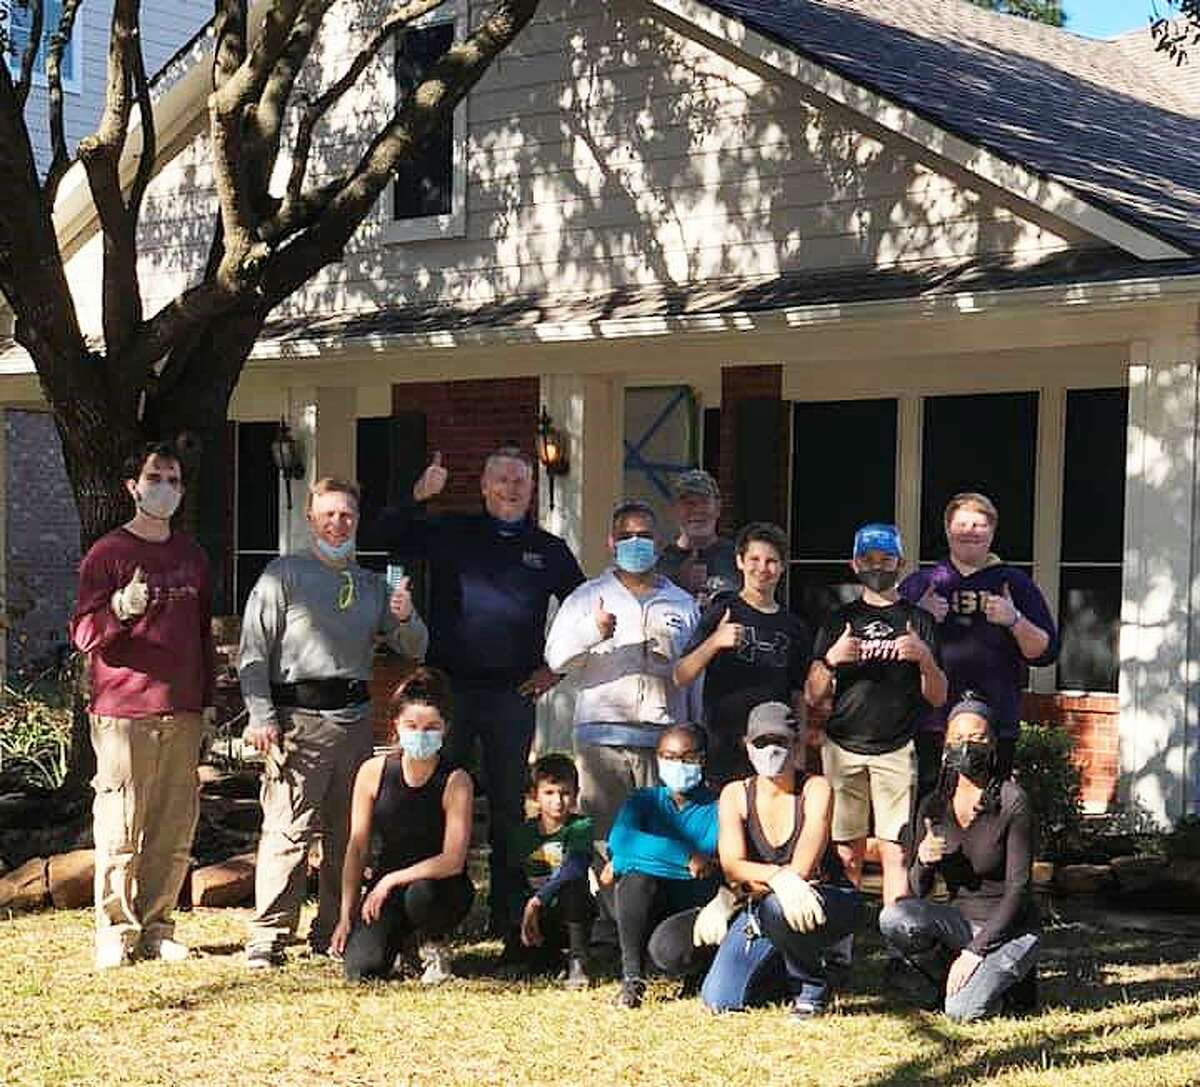 The Guardians take a break following their yeoman's work at the home of a person who requested their help. From left, Kenneth Cargill, Trey Smith, Ellen Smith, Seth Mitchell, Matthew Mitchell, Abraham Santana, Mike Hayes, Rylan Hayes, Tyler Hayes, Jack Deguise,Tina Grimstead Jenkins, Sydnei Grimstead, and Donna Gilliam.